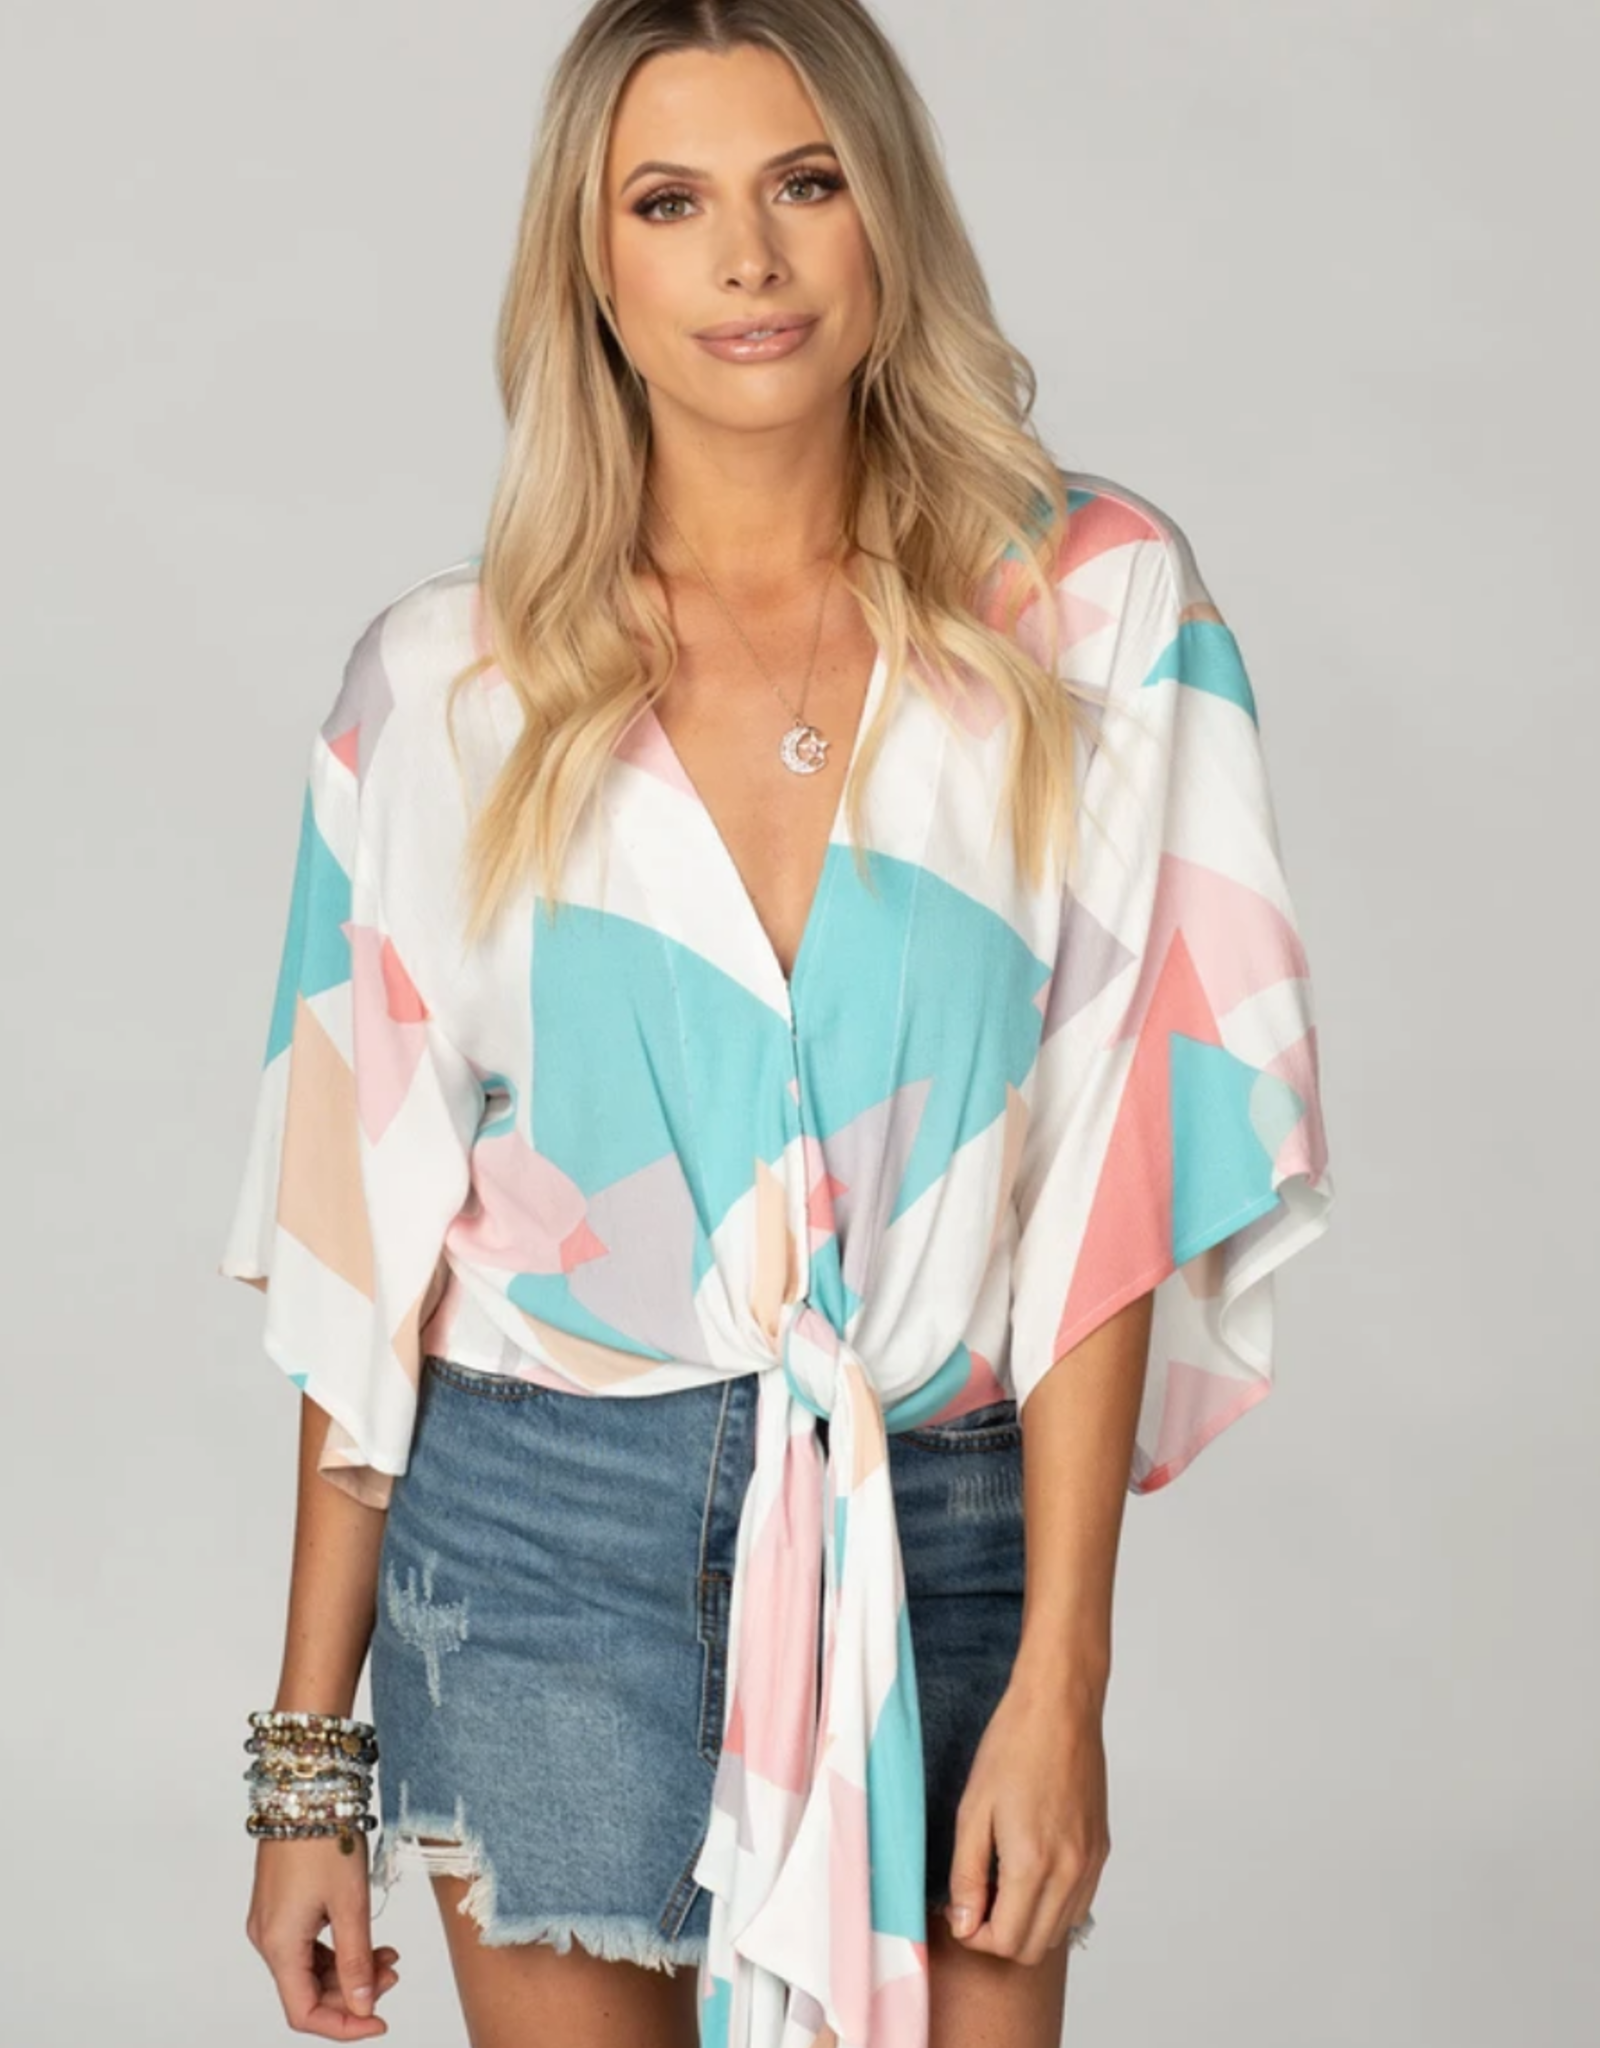 Buddy Love Muse Tie Top Origami